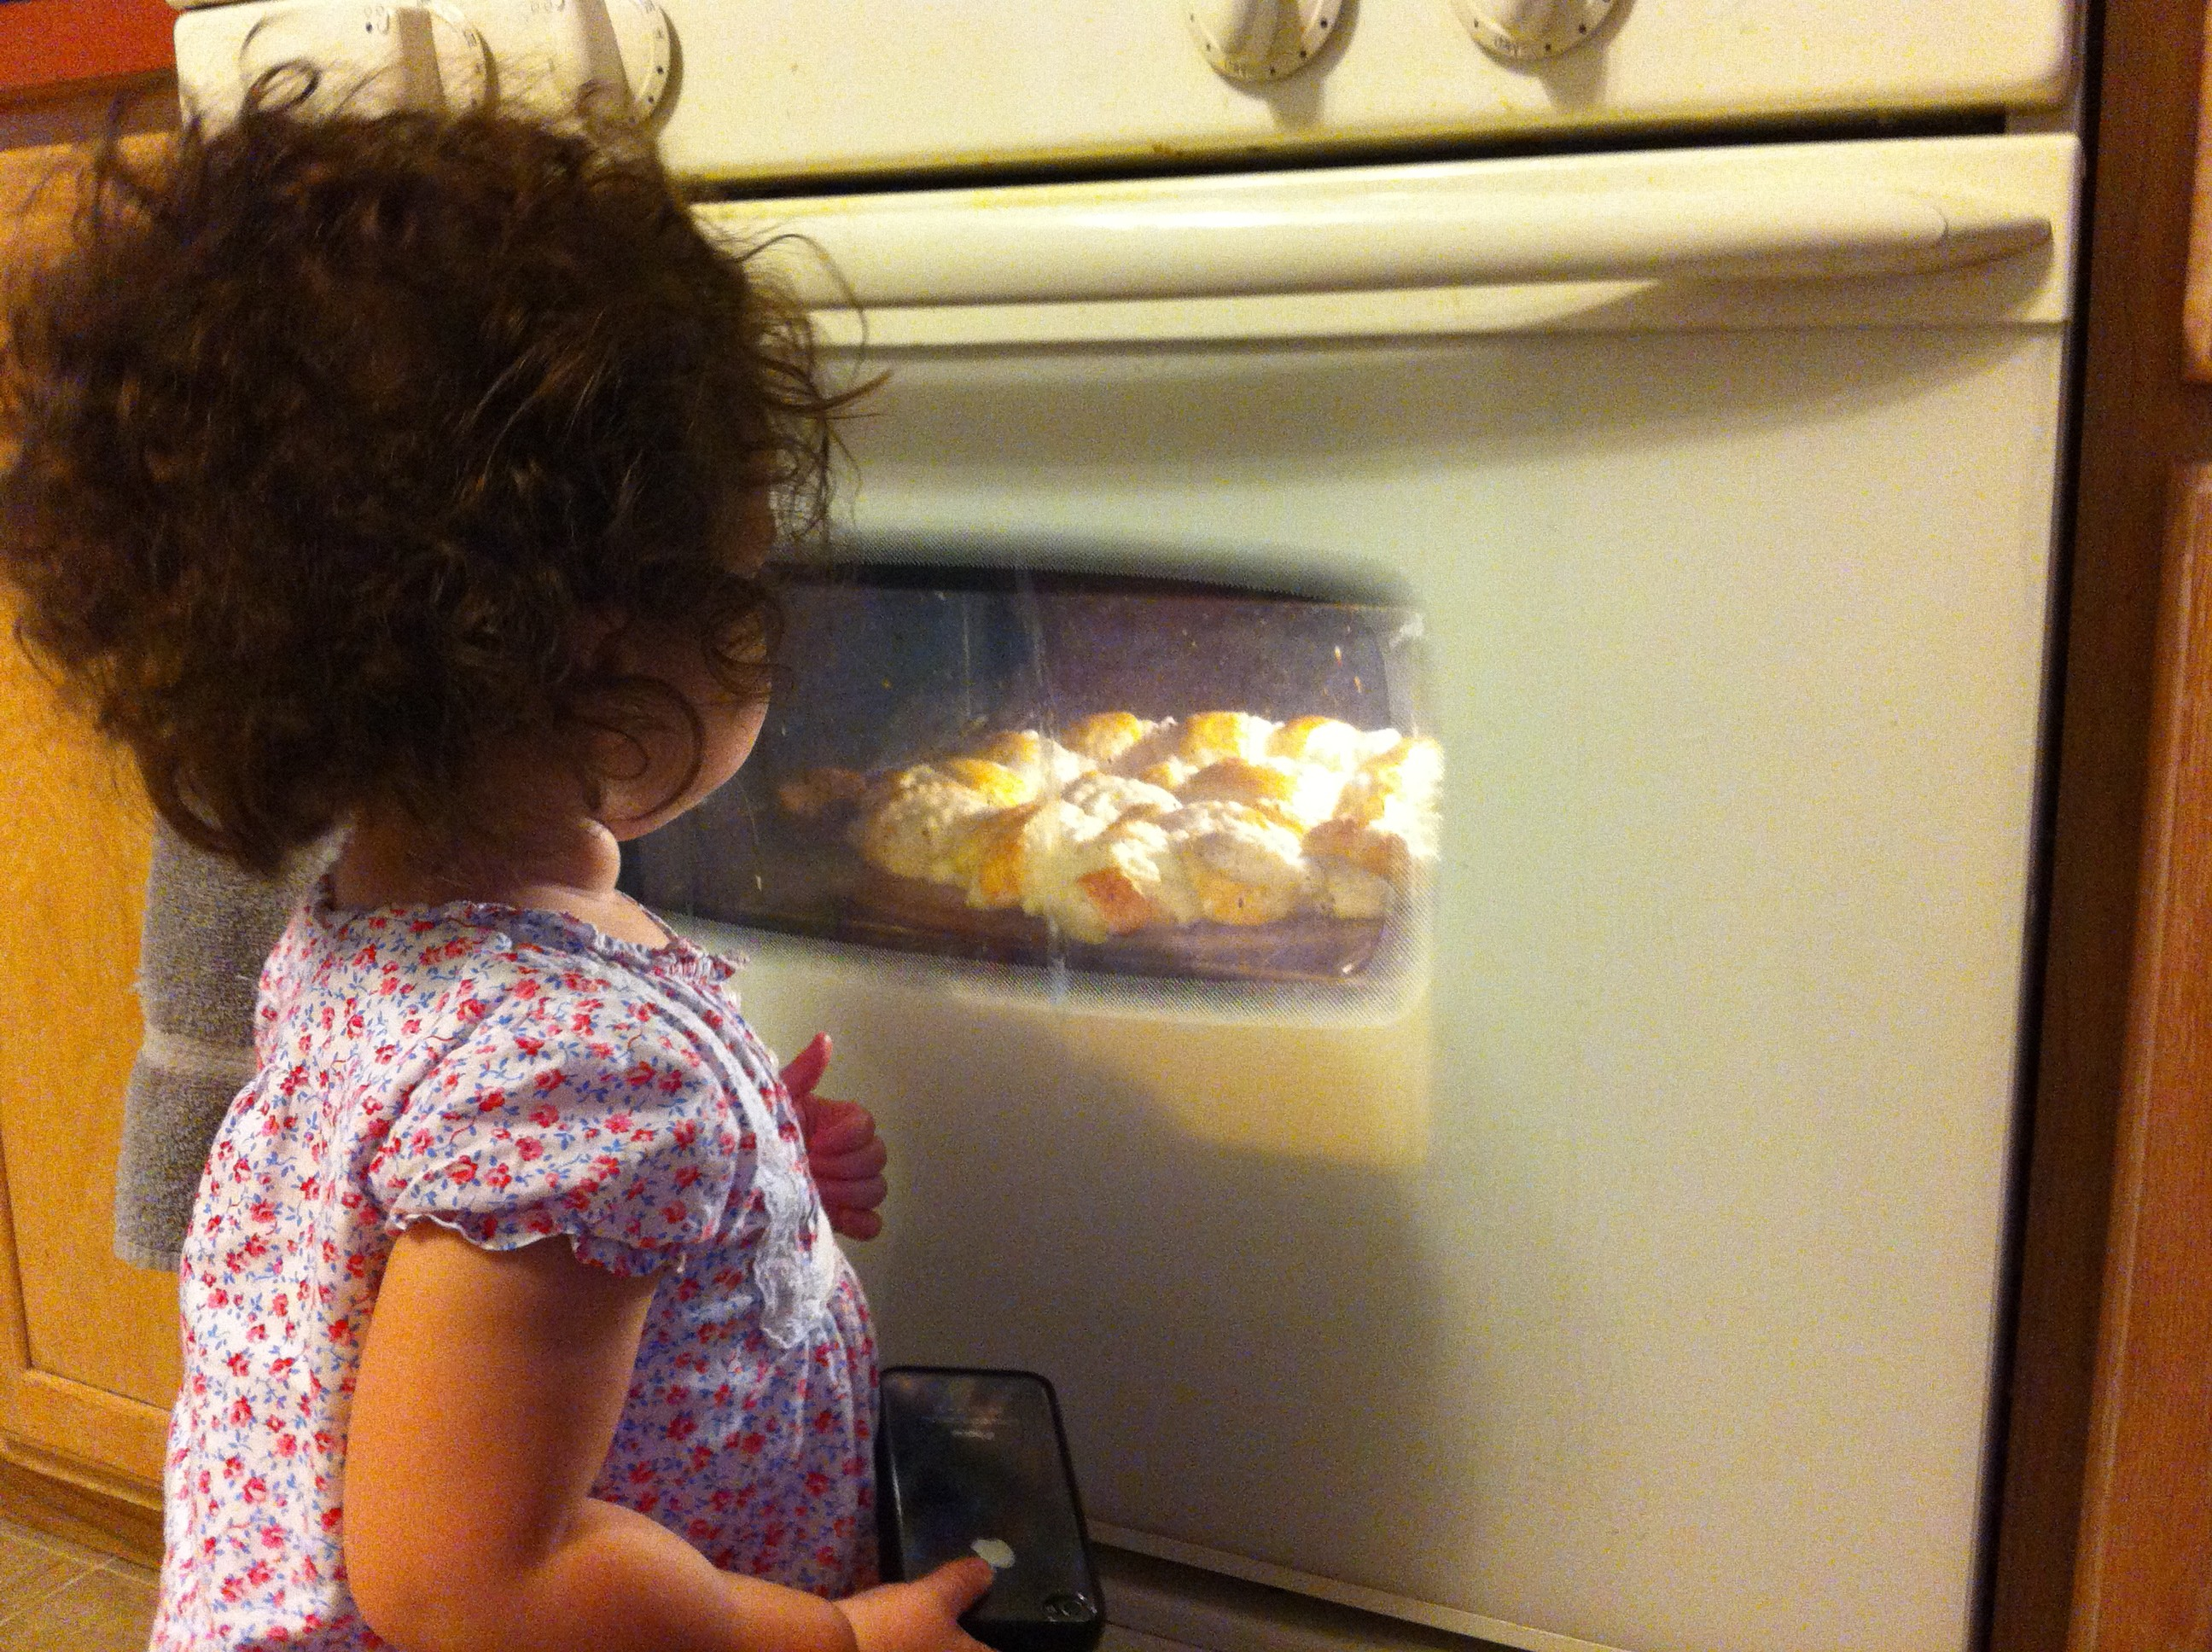 Baby girl loved watching the bread bake up